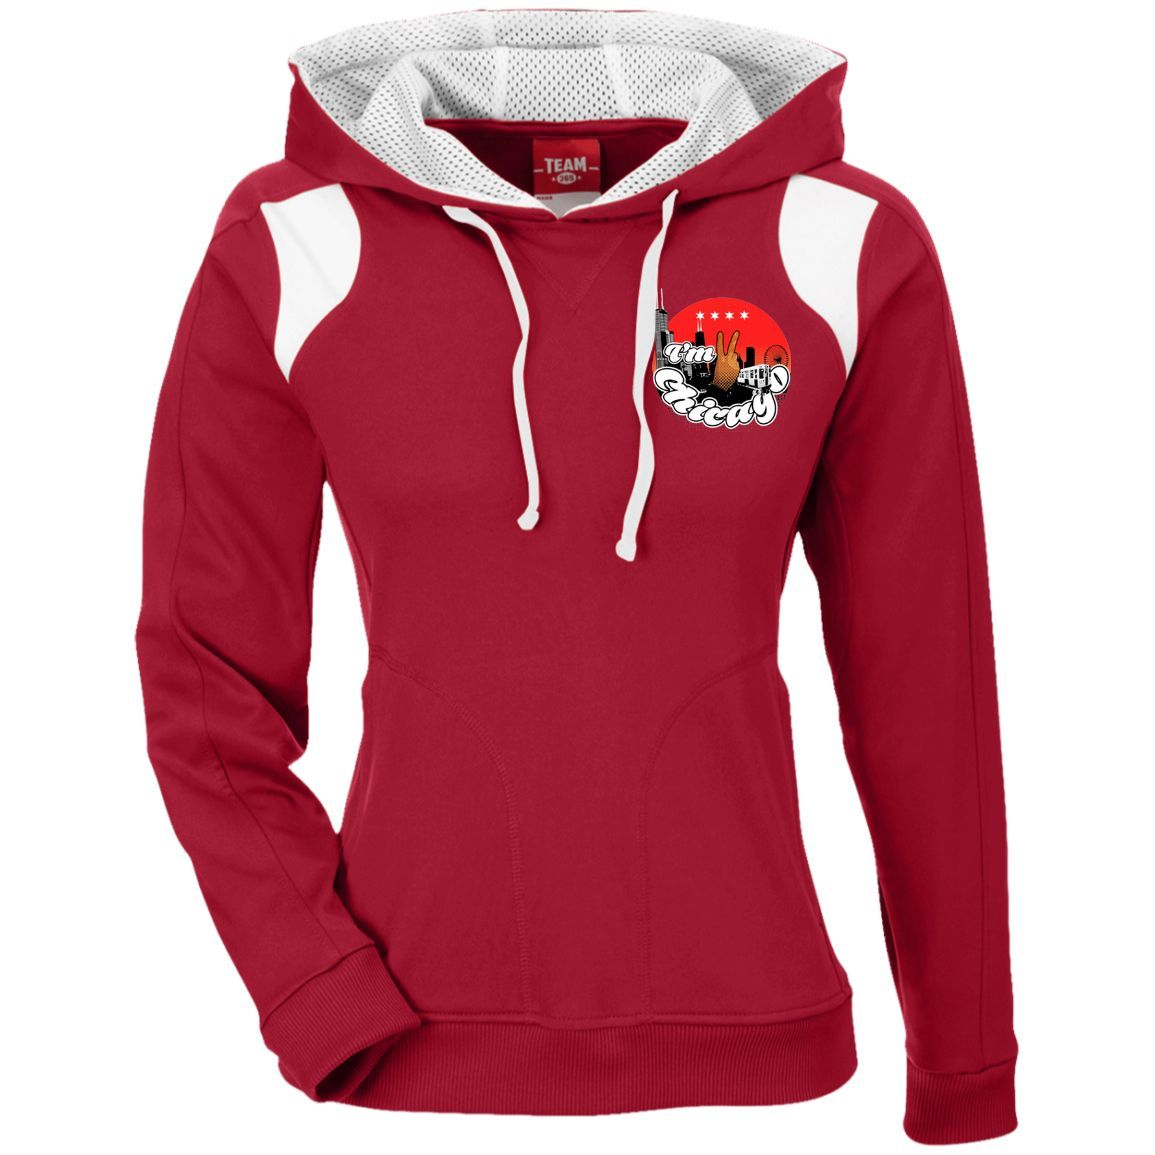 TT30W I'm 2 Chicago Ladies' Colorblock Poly Hoodie